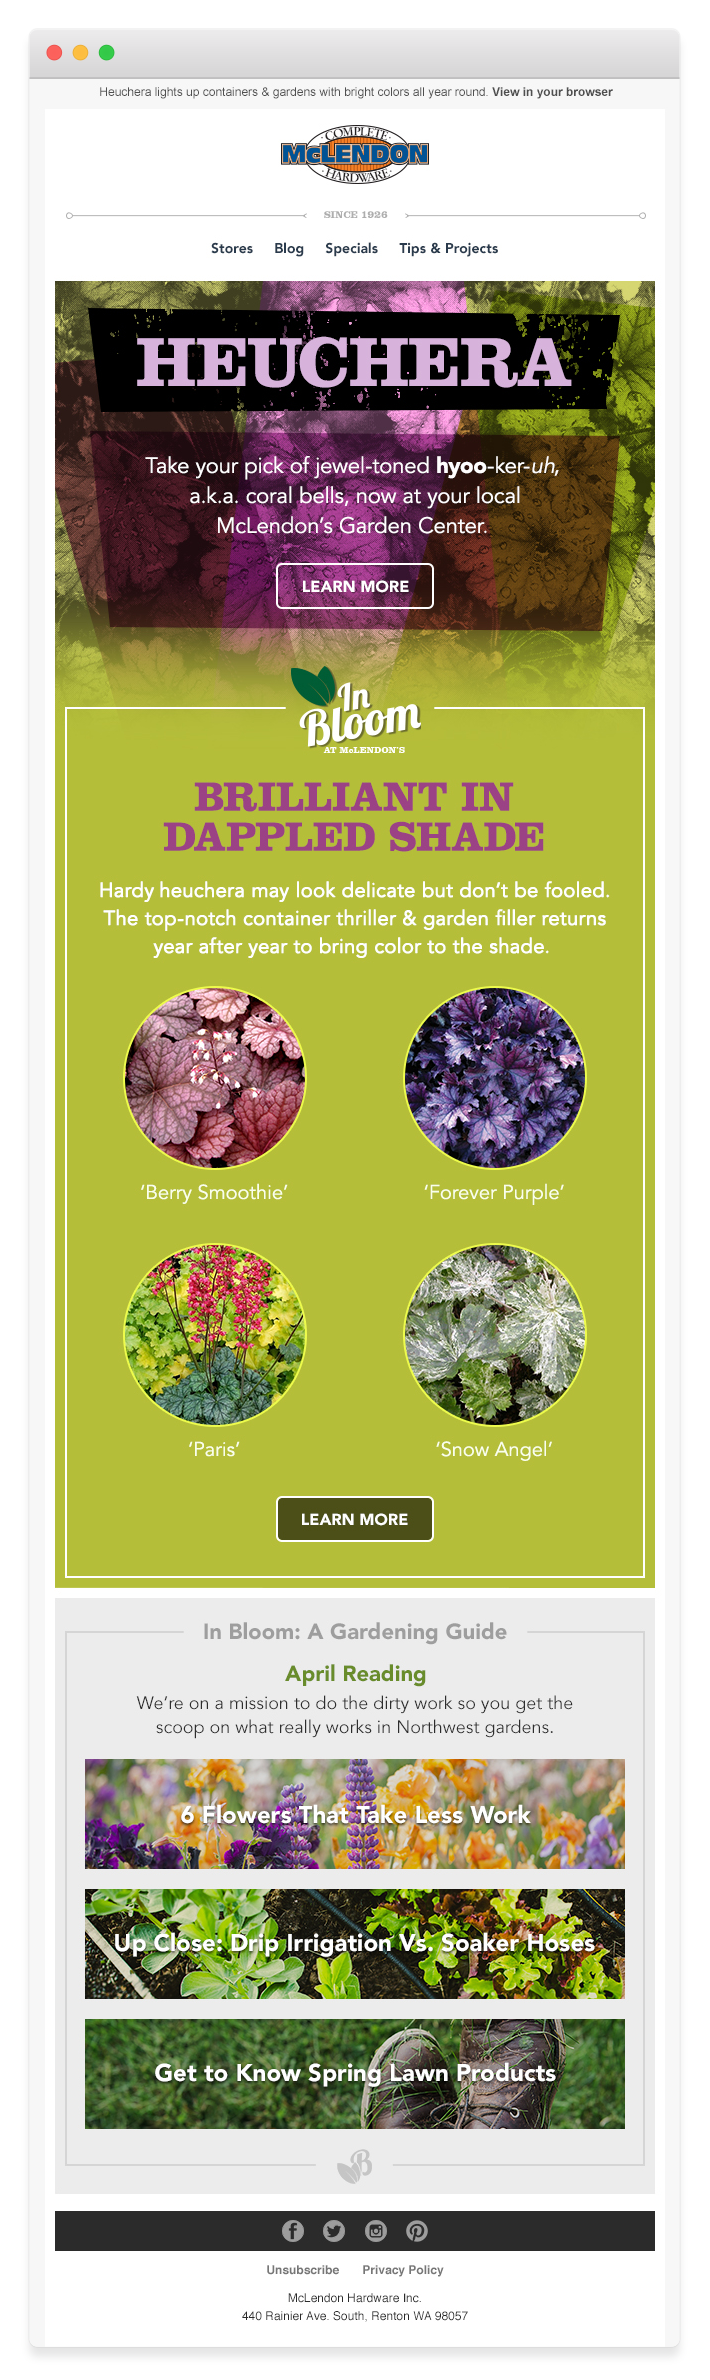 Plant of the Month Email with a Garden Guide Subfeature